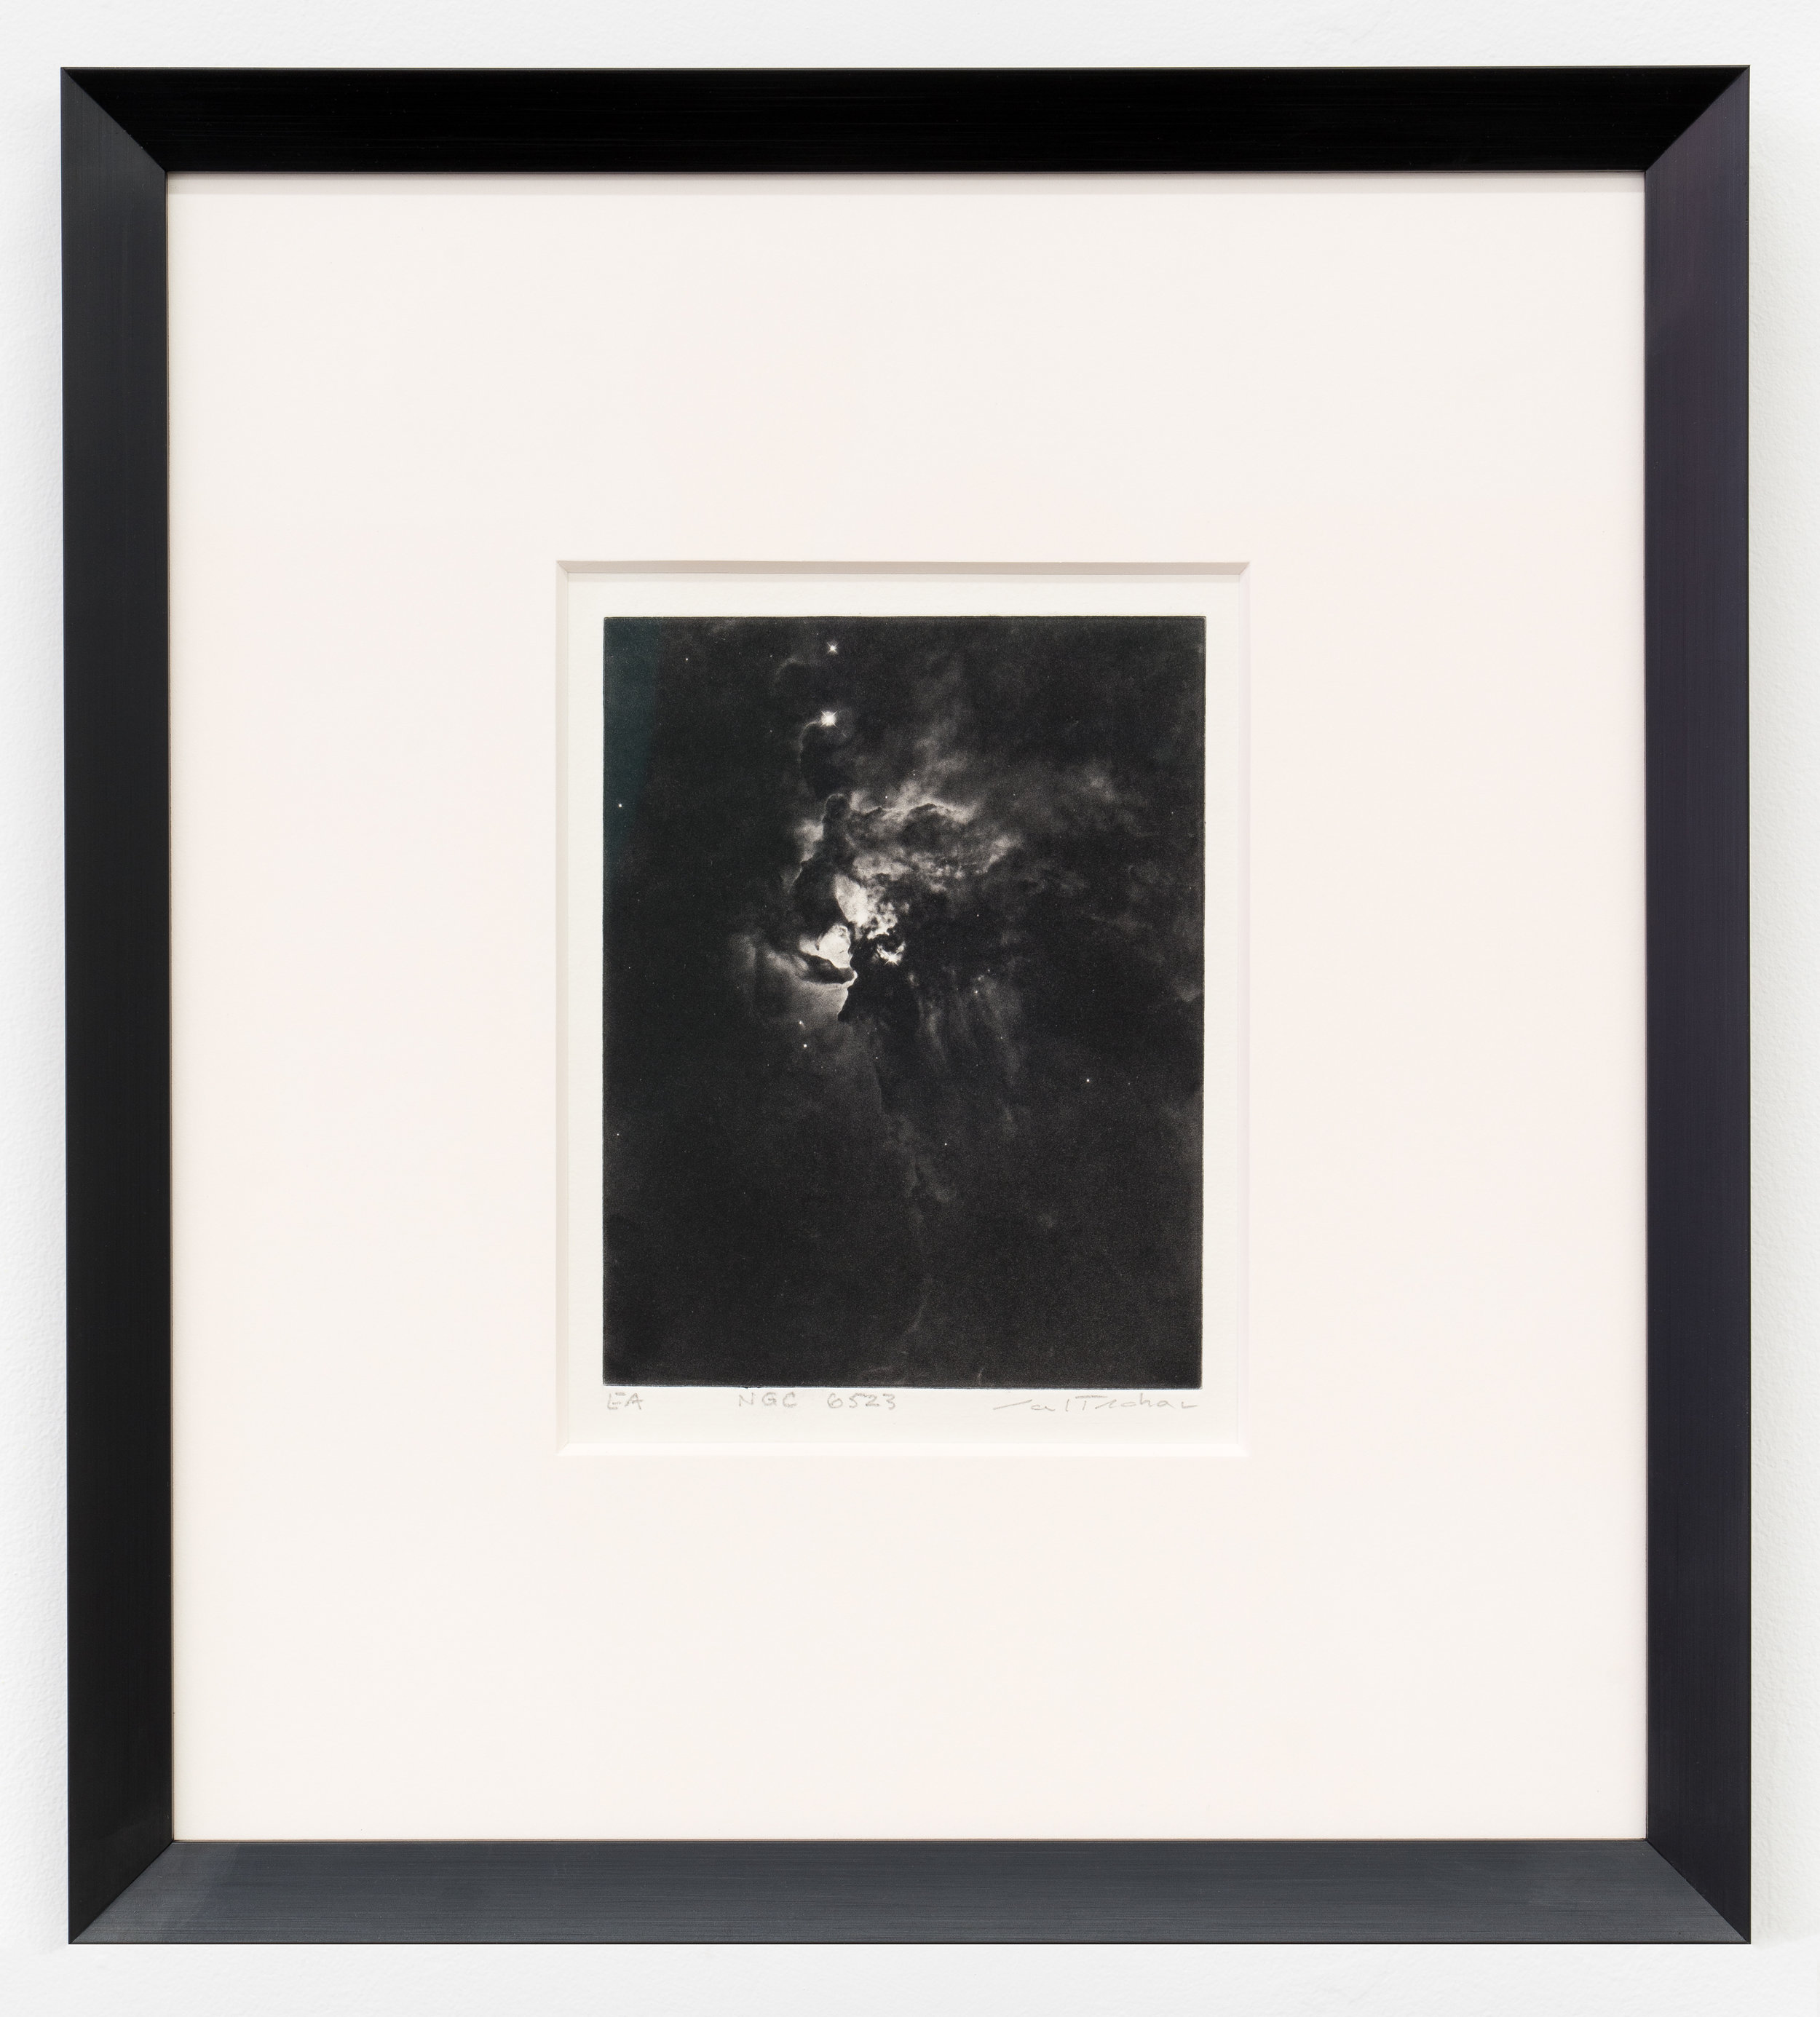 """Carl Trahan,  NGC 6523 , edition of 4,   2018, etching on paper, printed by Maria Chronopoulos, 10"""" x 8.5"""" (26 x 22 cm)"""